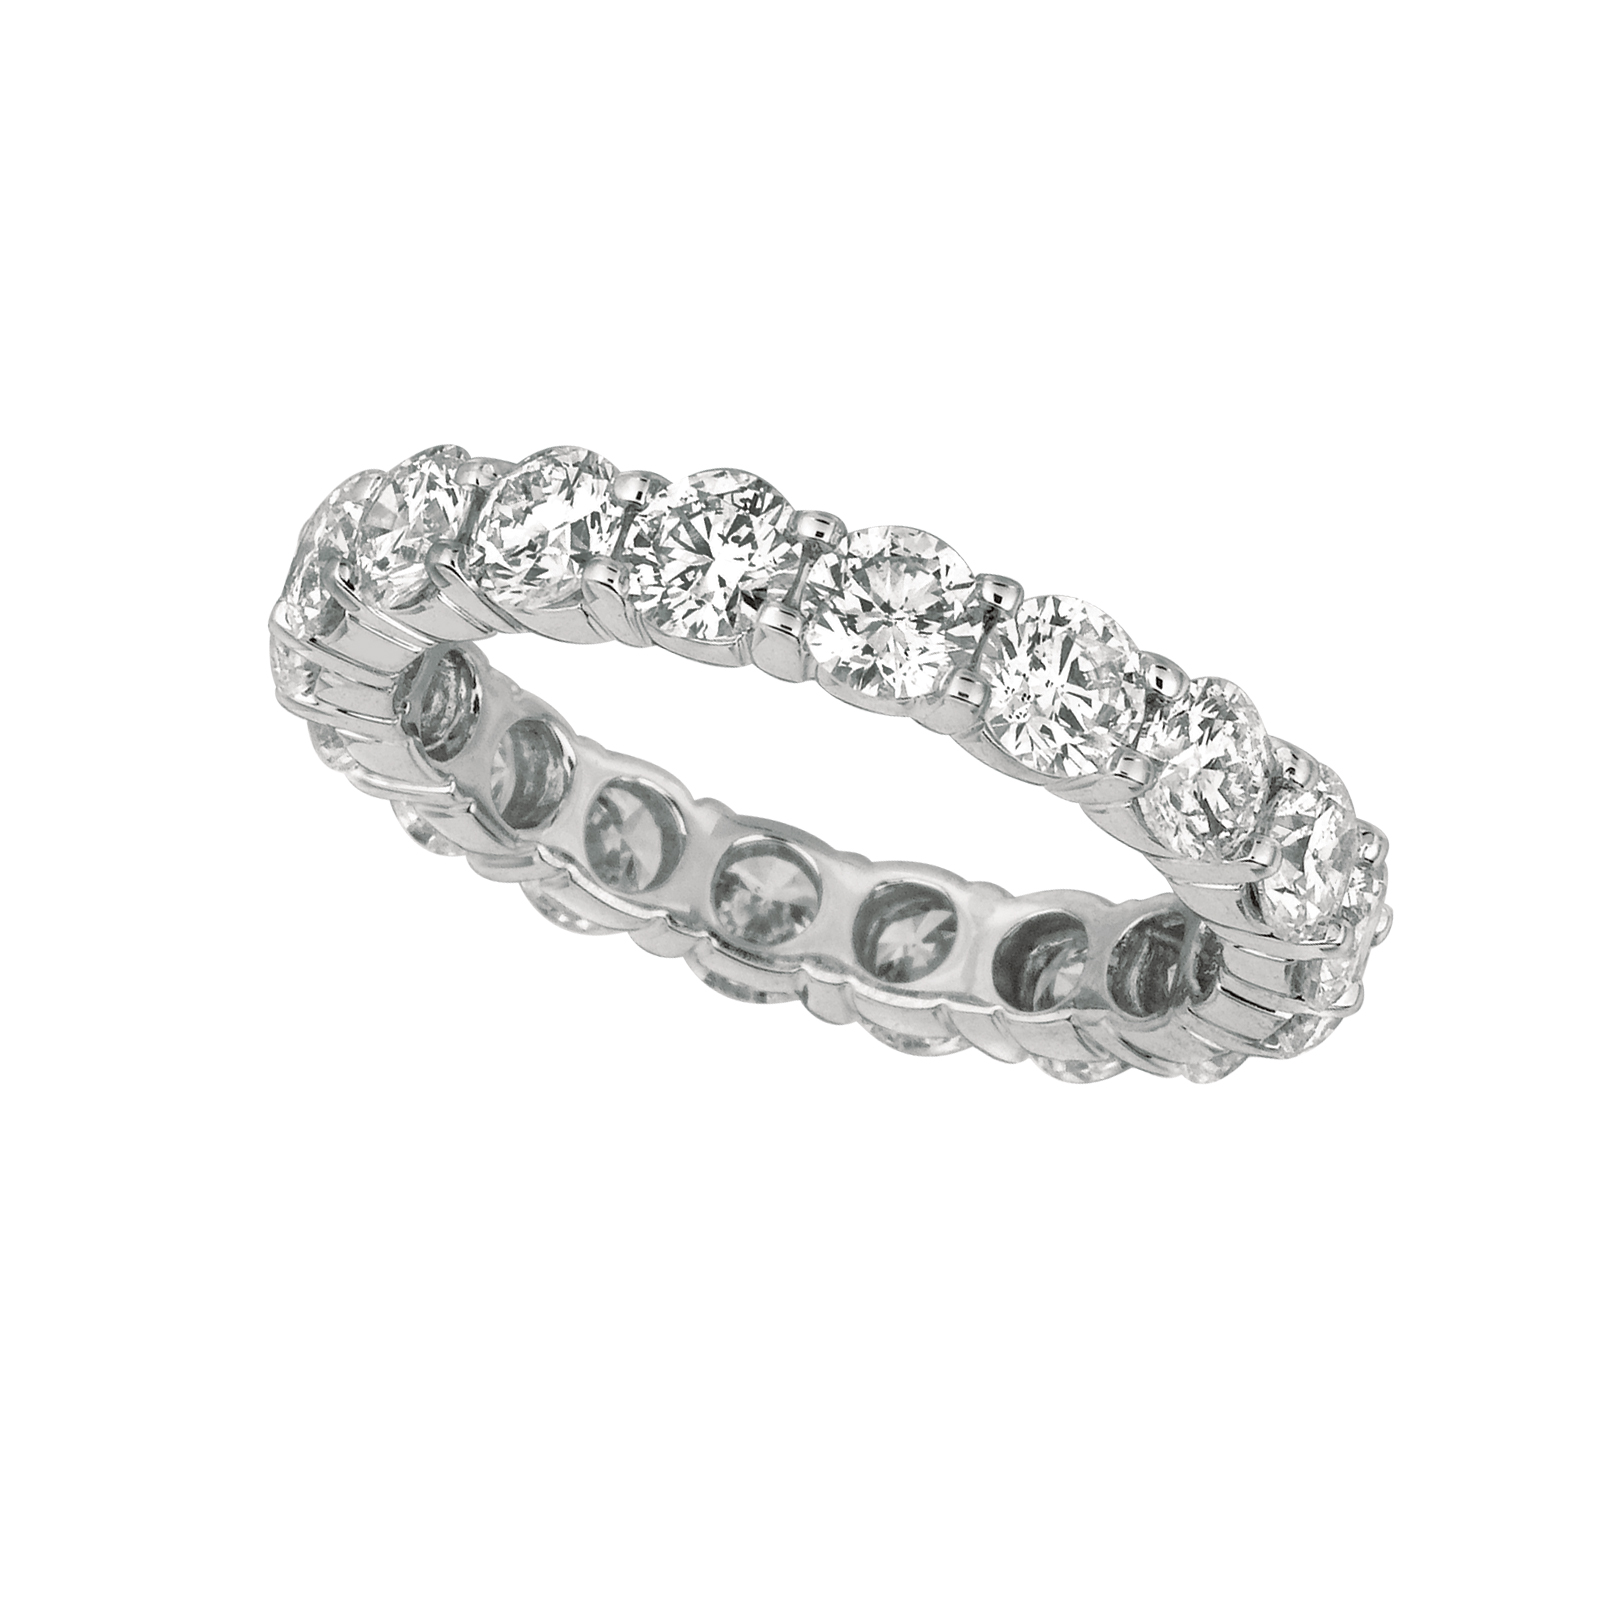 band haywards bands of eternity diamond hong diamondeternityband next previous product kong